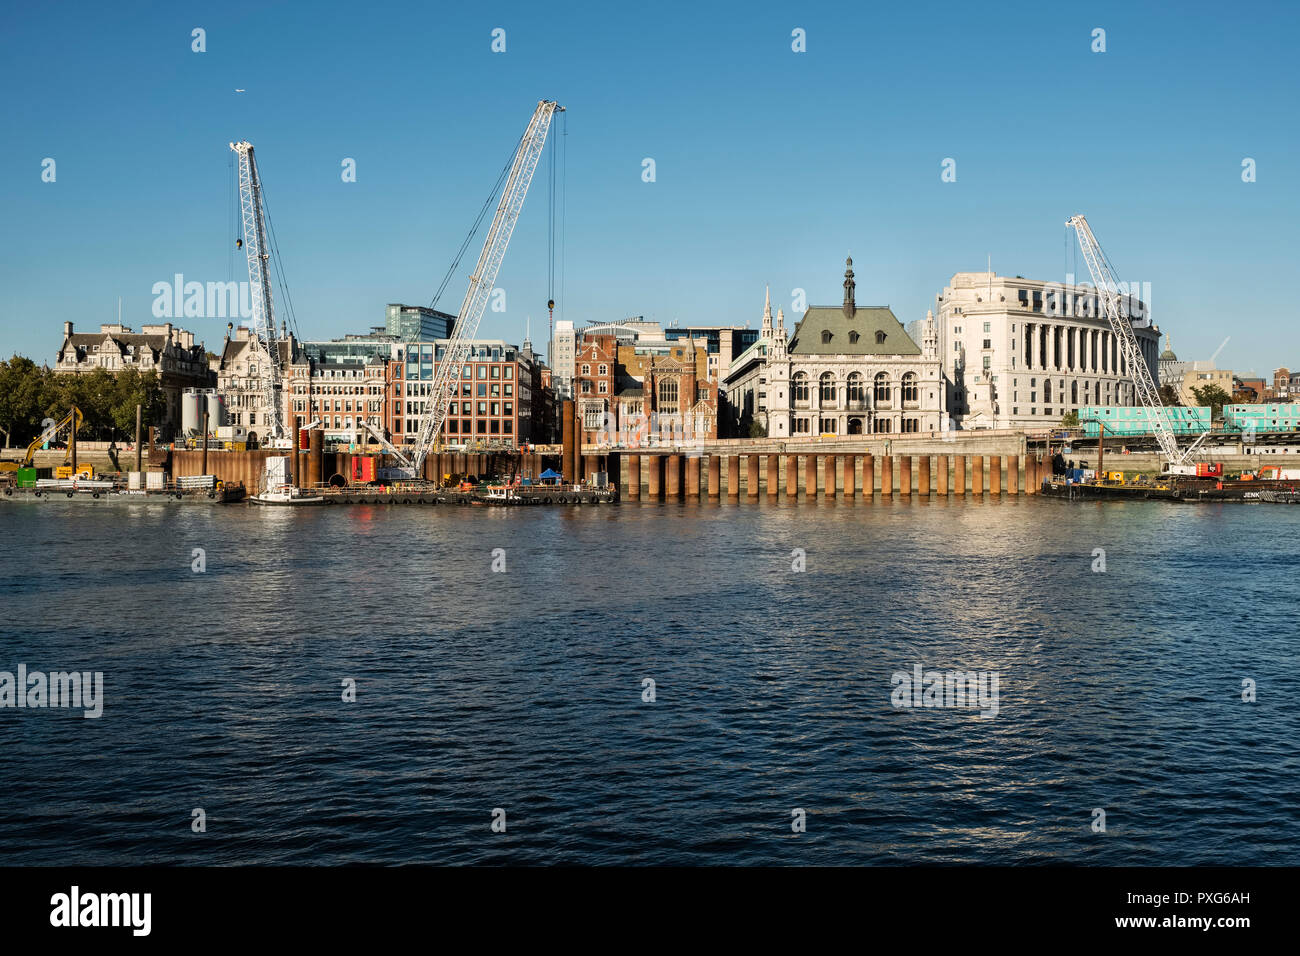 London, UK. View across the River Thames to the Victoria Embankment by Blackfriars Bridge foreshore. Construction of a new 'super sewer' and pier - Stock Image